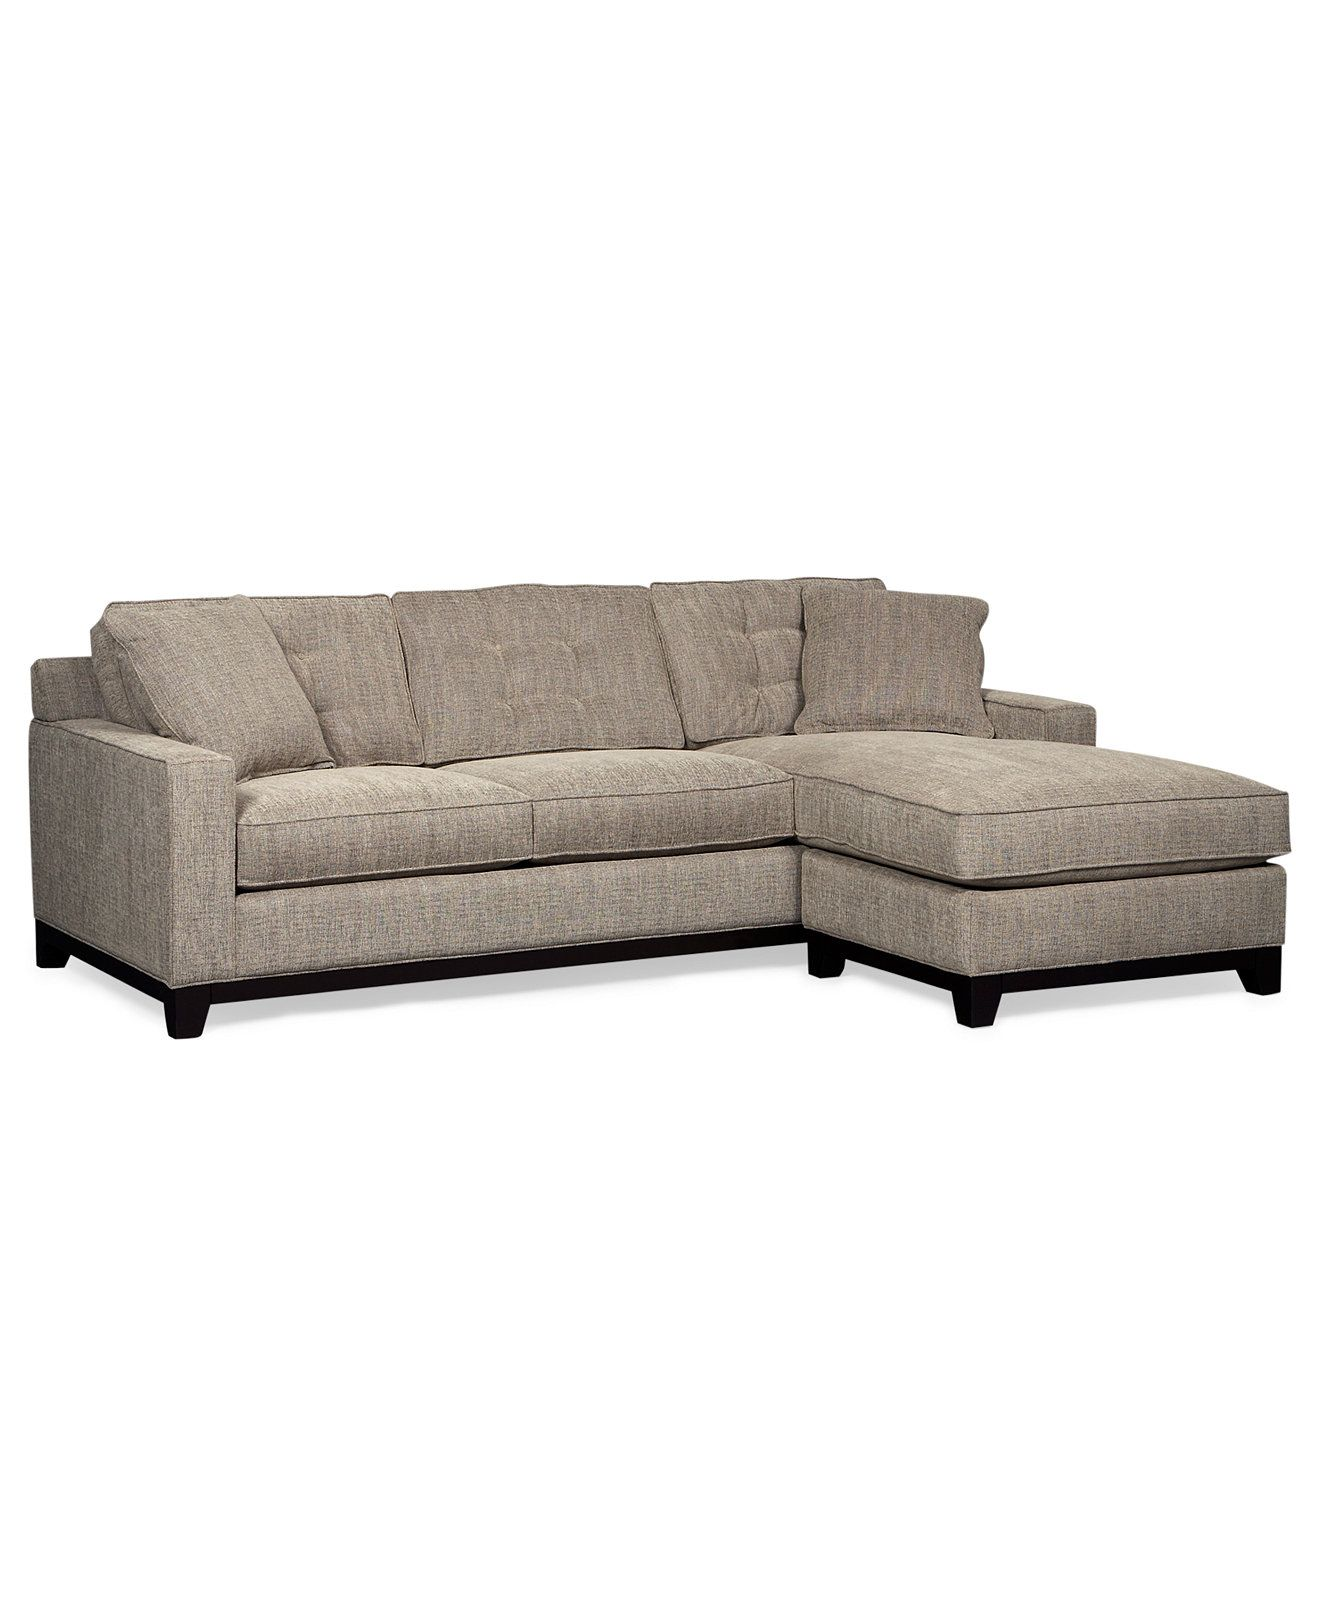 Clarke Fabric 2 Pc Chaise Sectional Queen Sleeper Sofa Bed